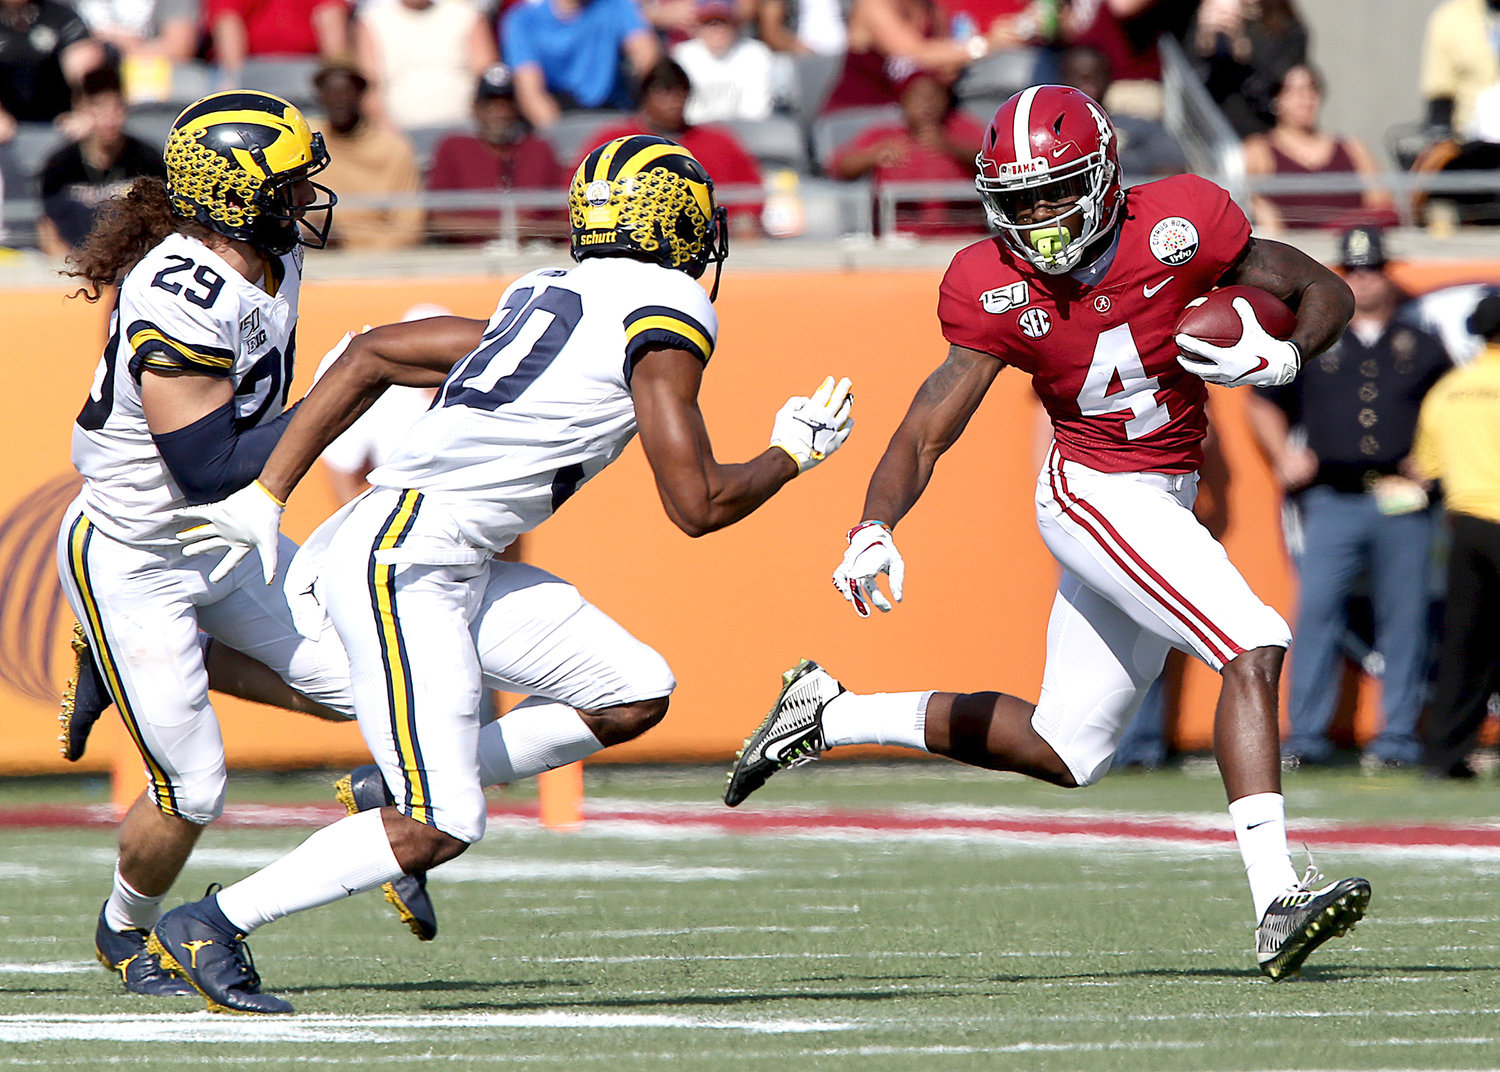 Alabama Crimson Tide wide receiver Jerry Jeudy (4) tries to find the edge during the first half of the Citrus Bowl against the Michigan Wolverines Wednesday at Camping World Stadium in Orlando, Fla. Alabama won 35-16.